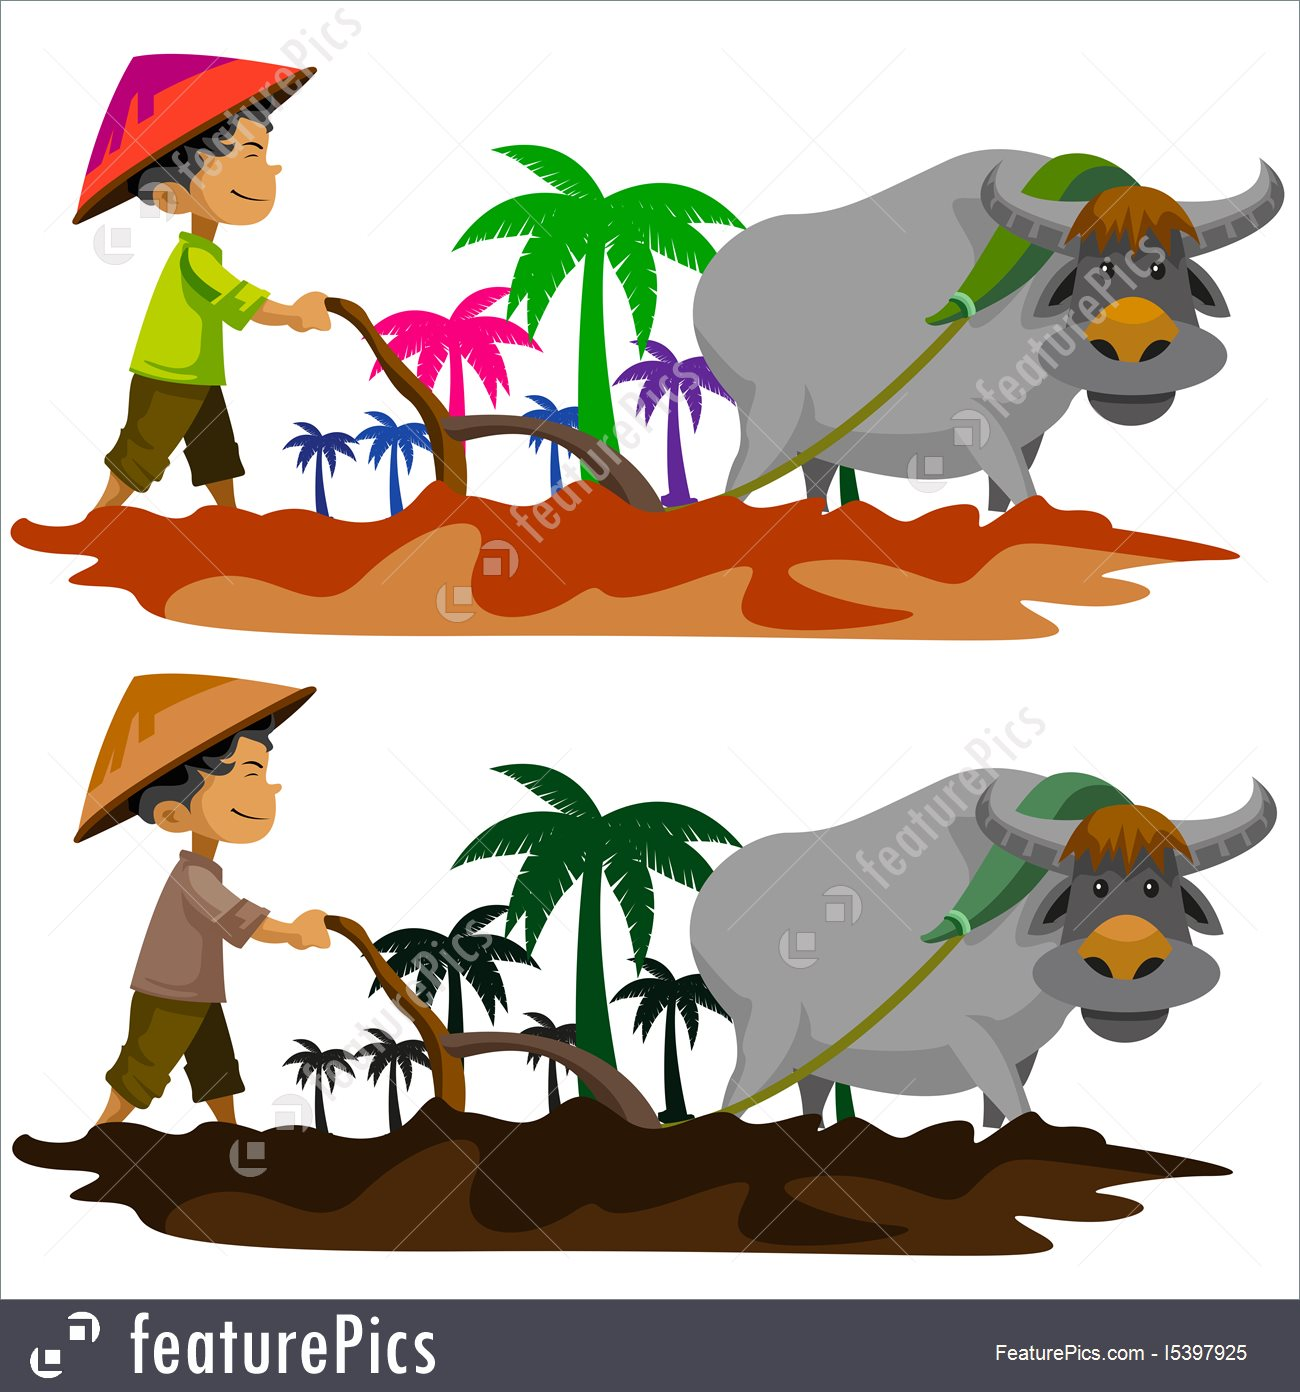 Filipino Farmer Clipart.